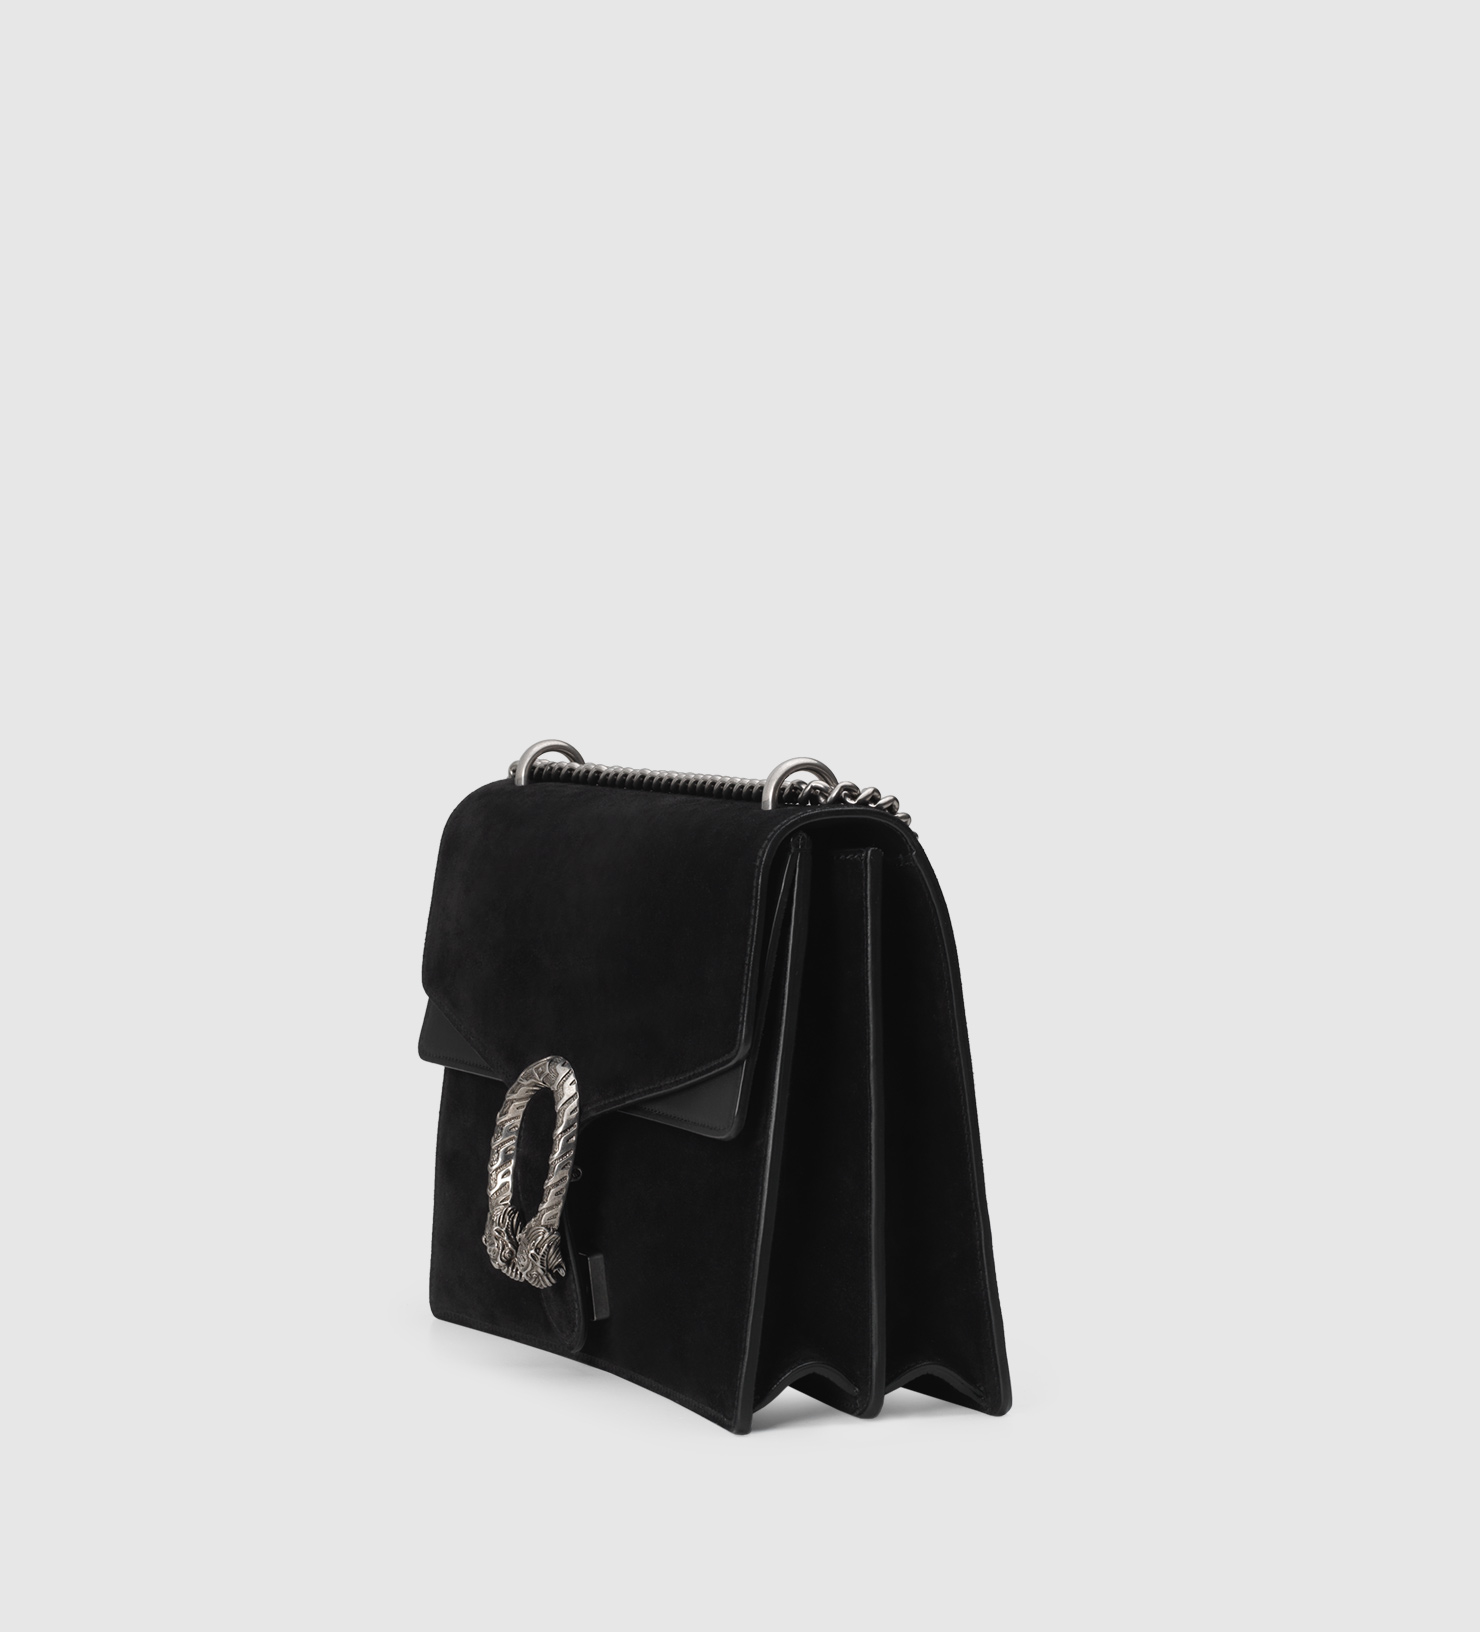 9e7cfd8256ca Gucci Dionysus Large Leather-trimmed Suede Shoulder Bag in Black - Lyst